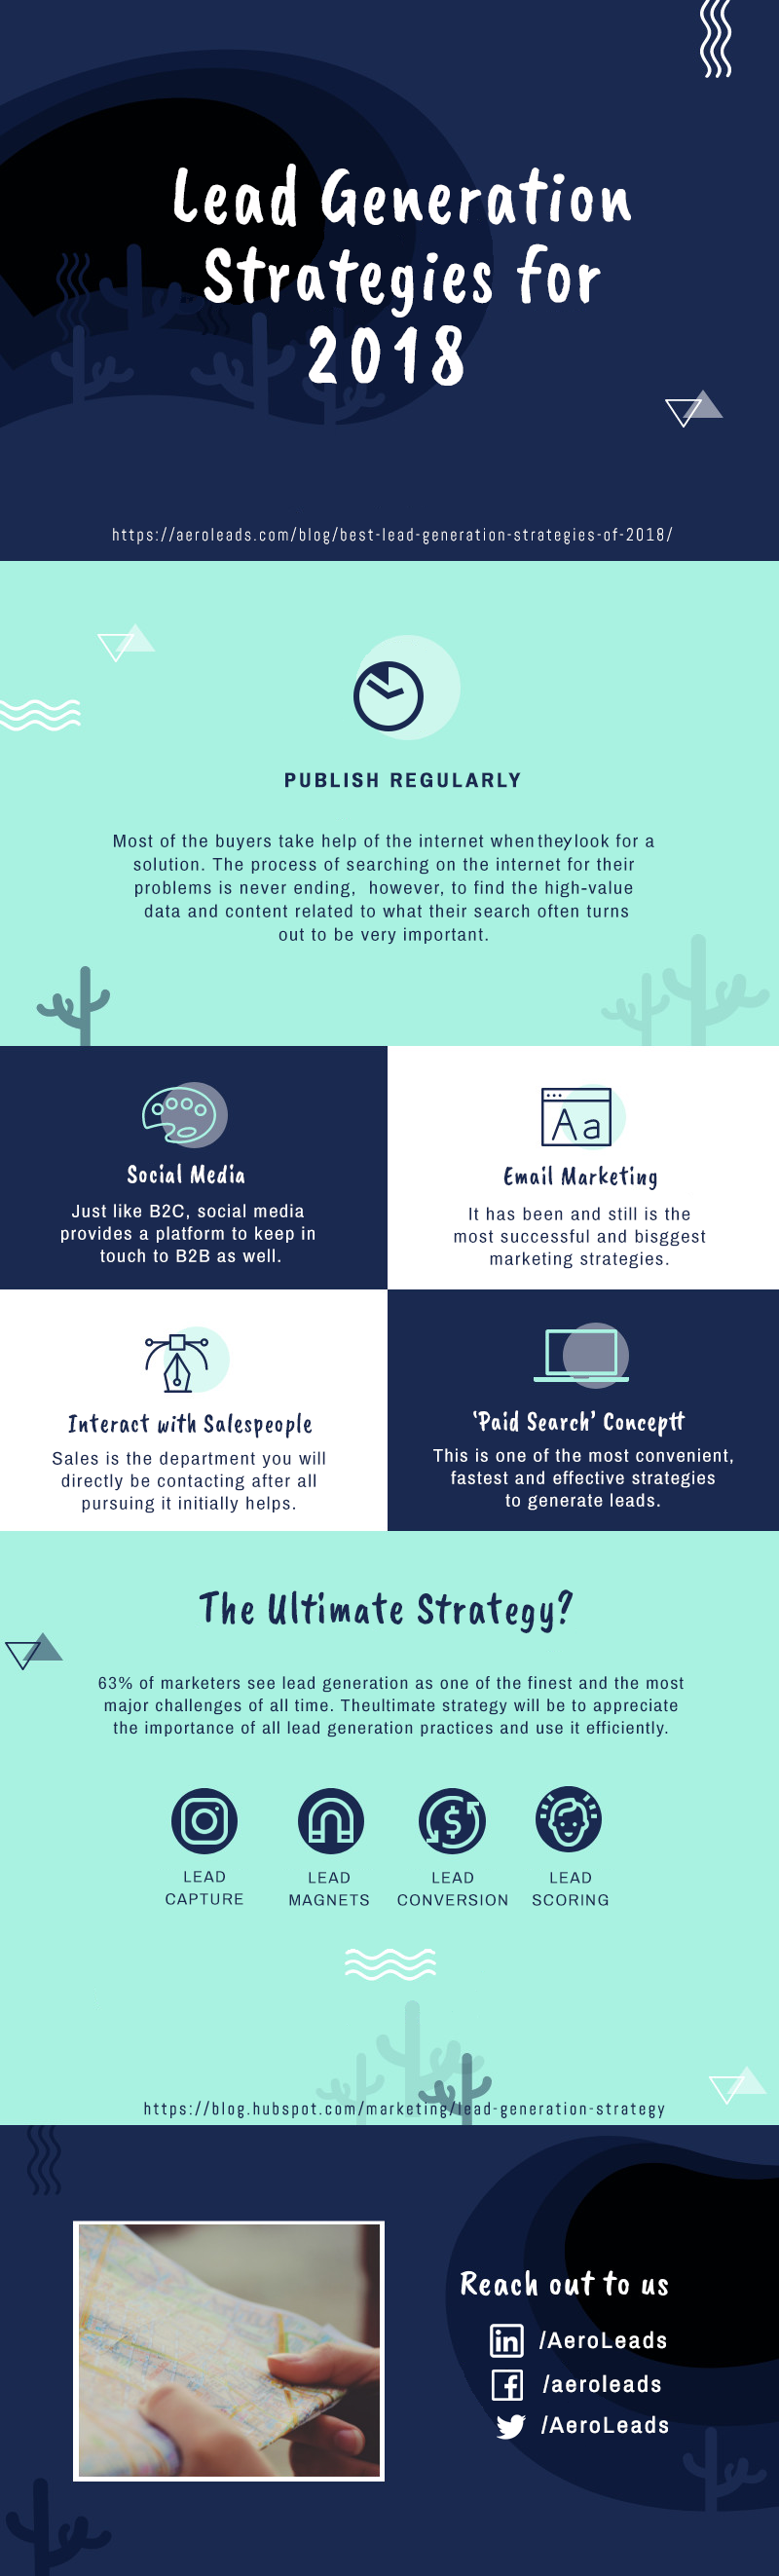 Lead Generation Strategies for 2018 infographics